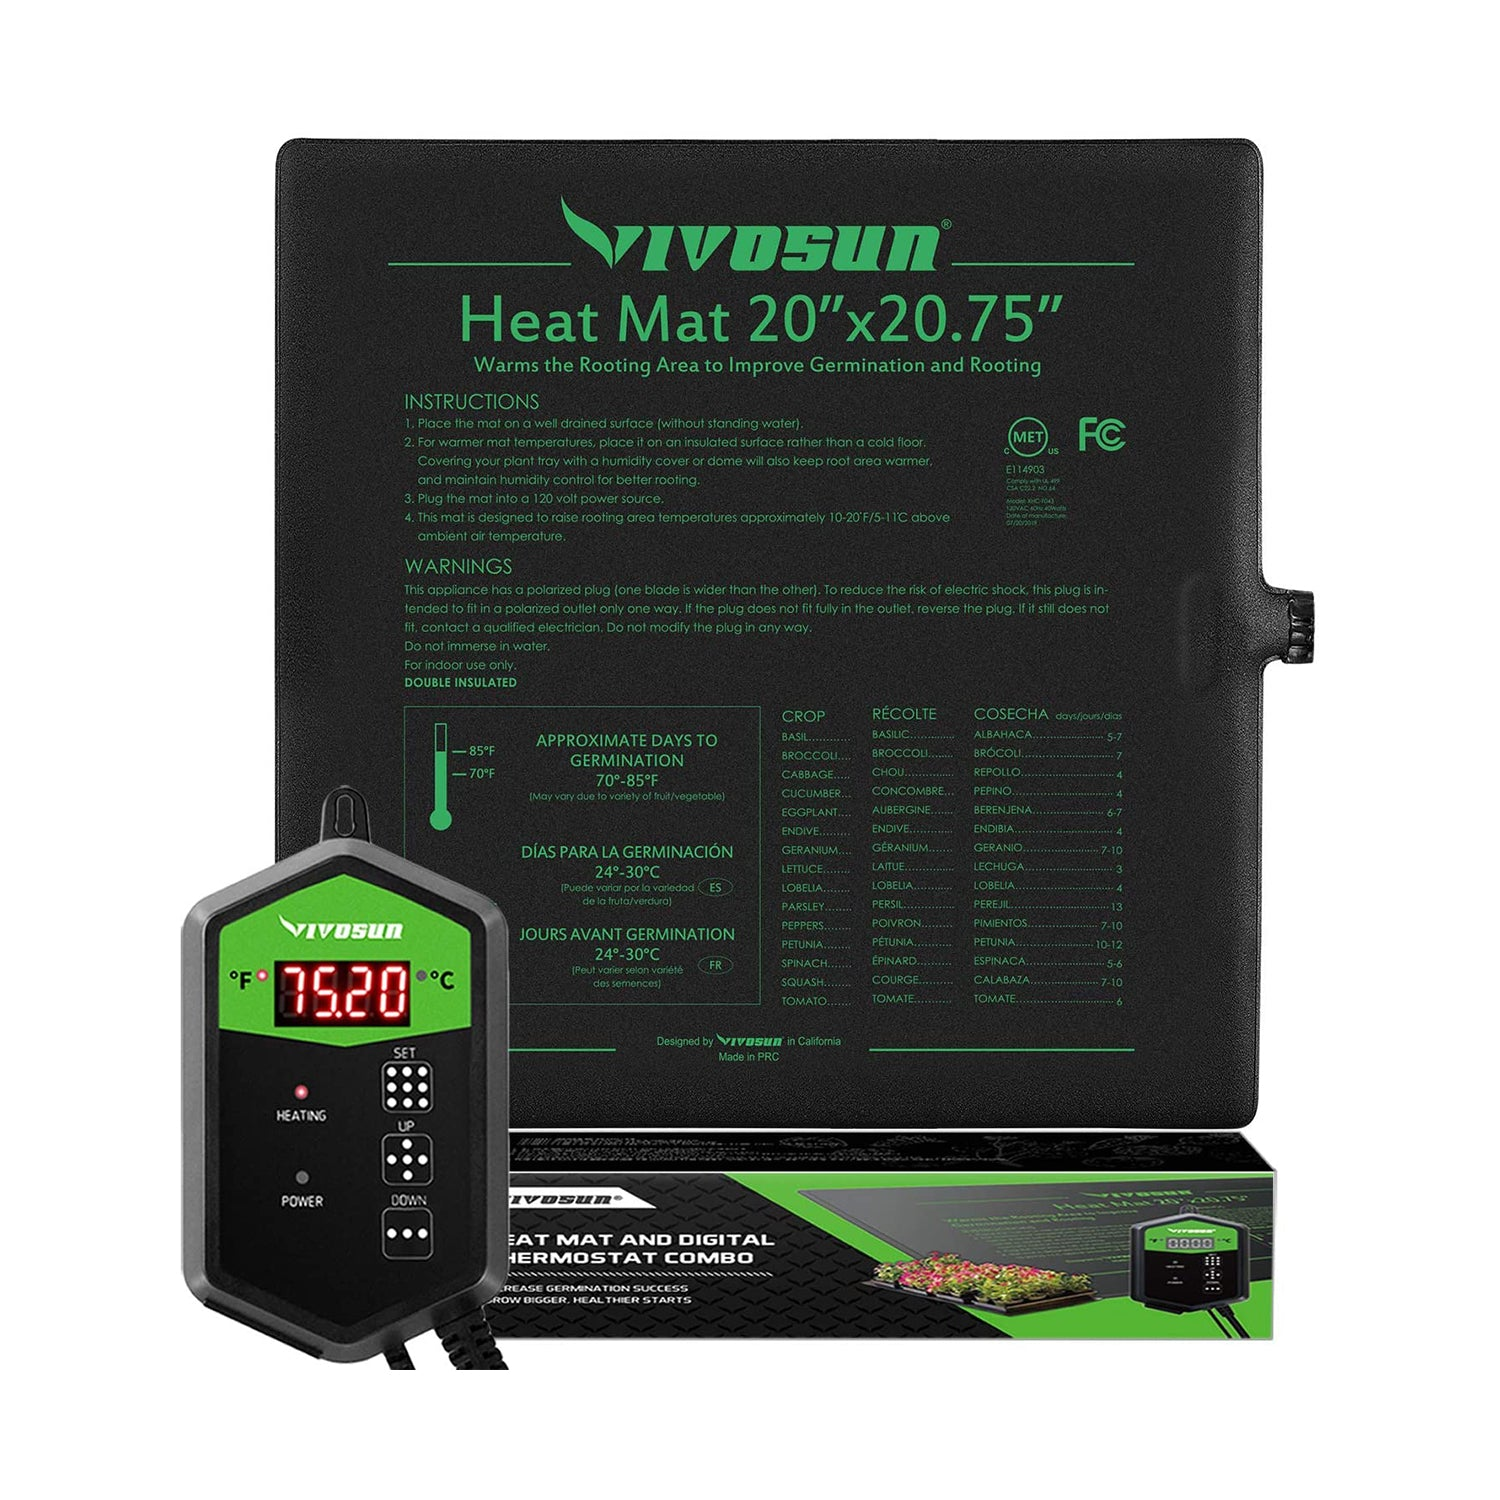 VIVOSUN Seedling Heat Mat Digital Thermostat Combo